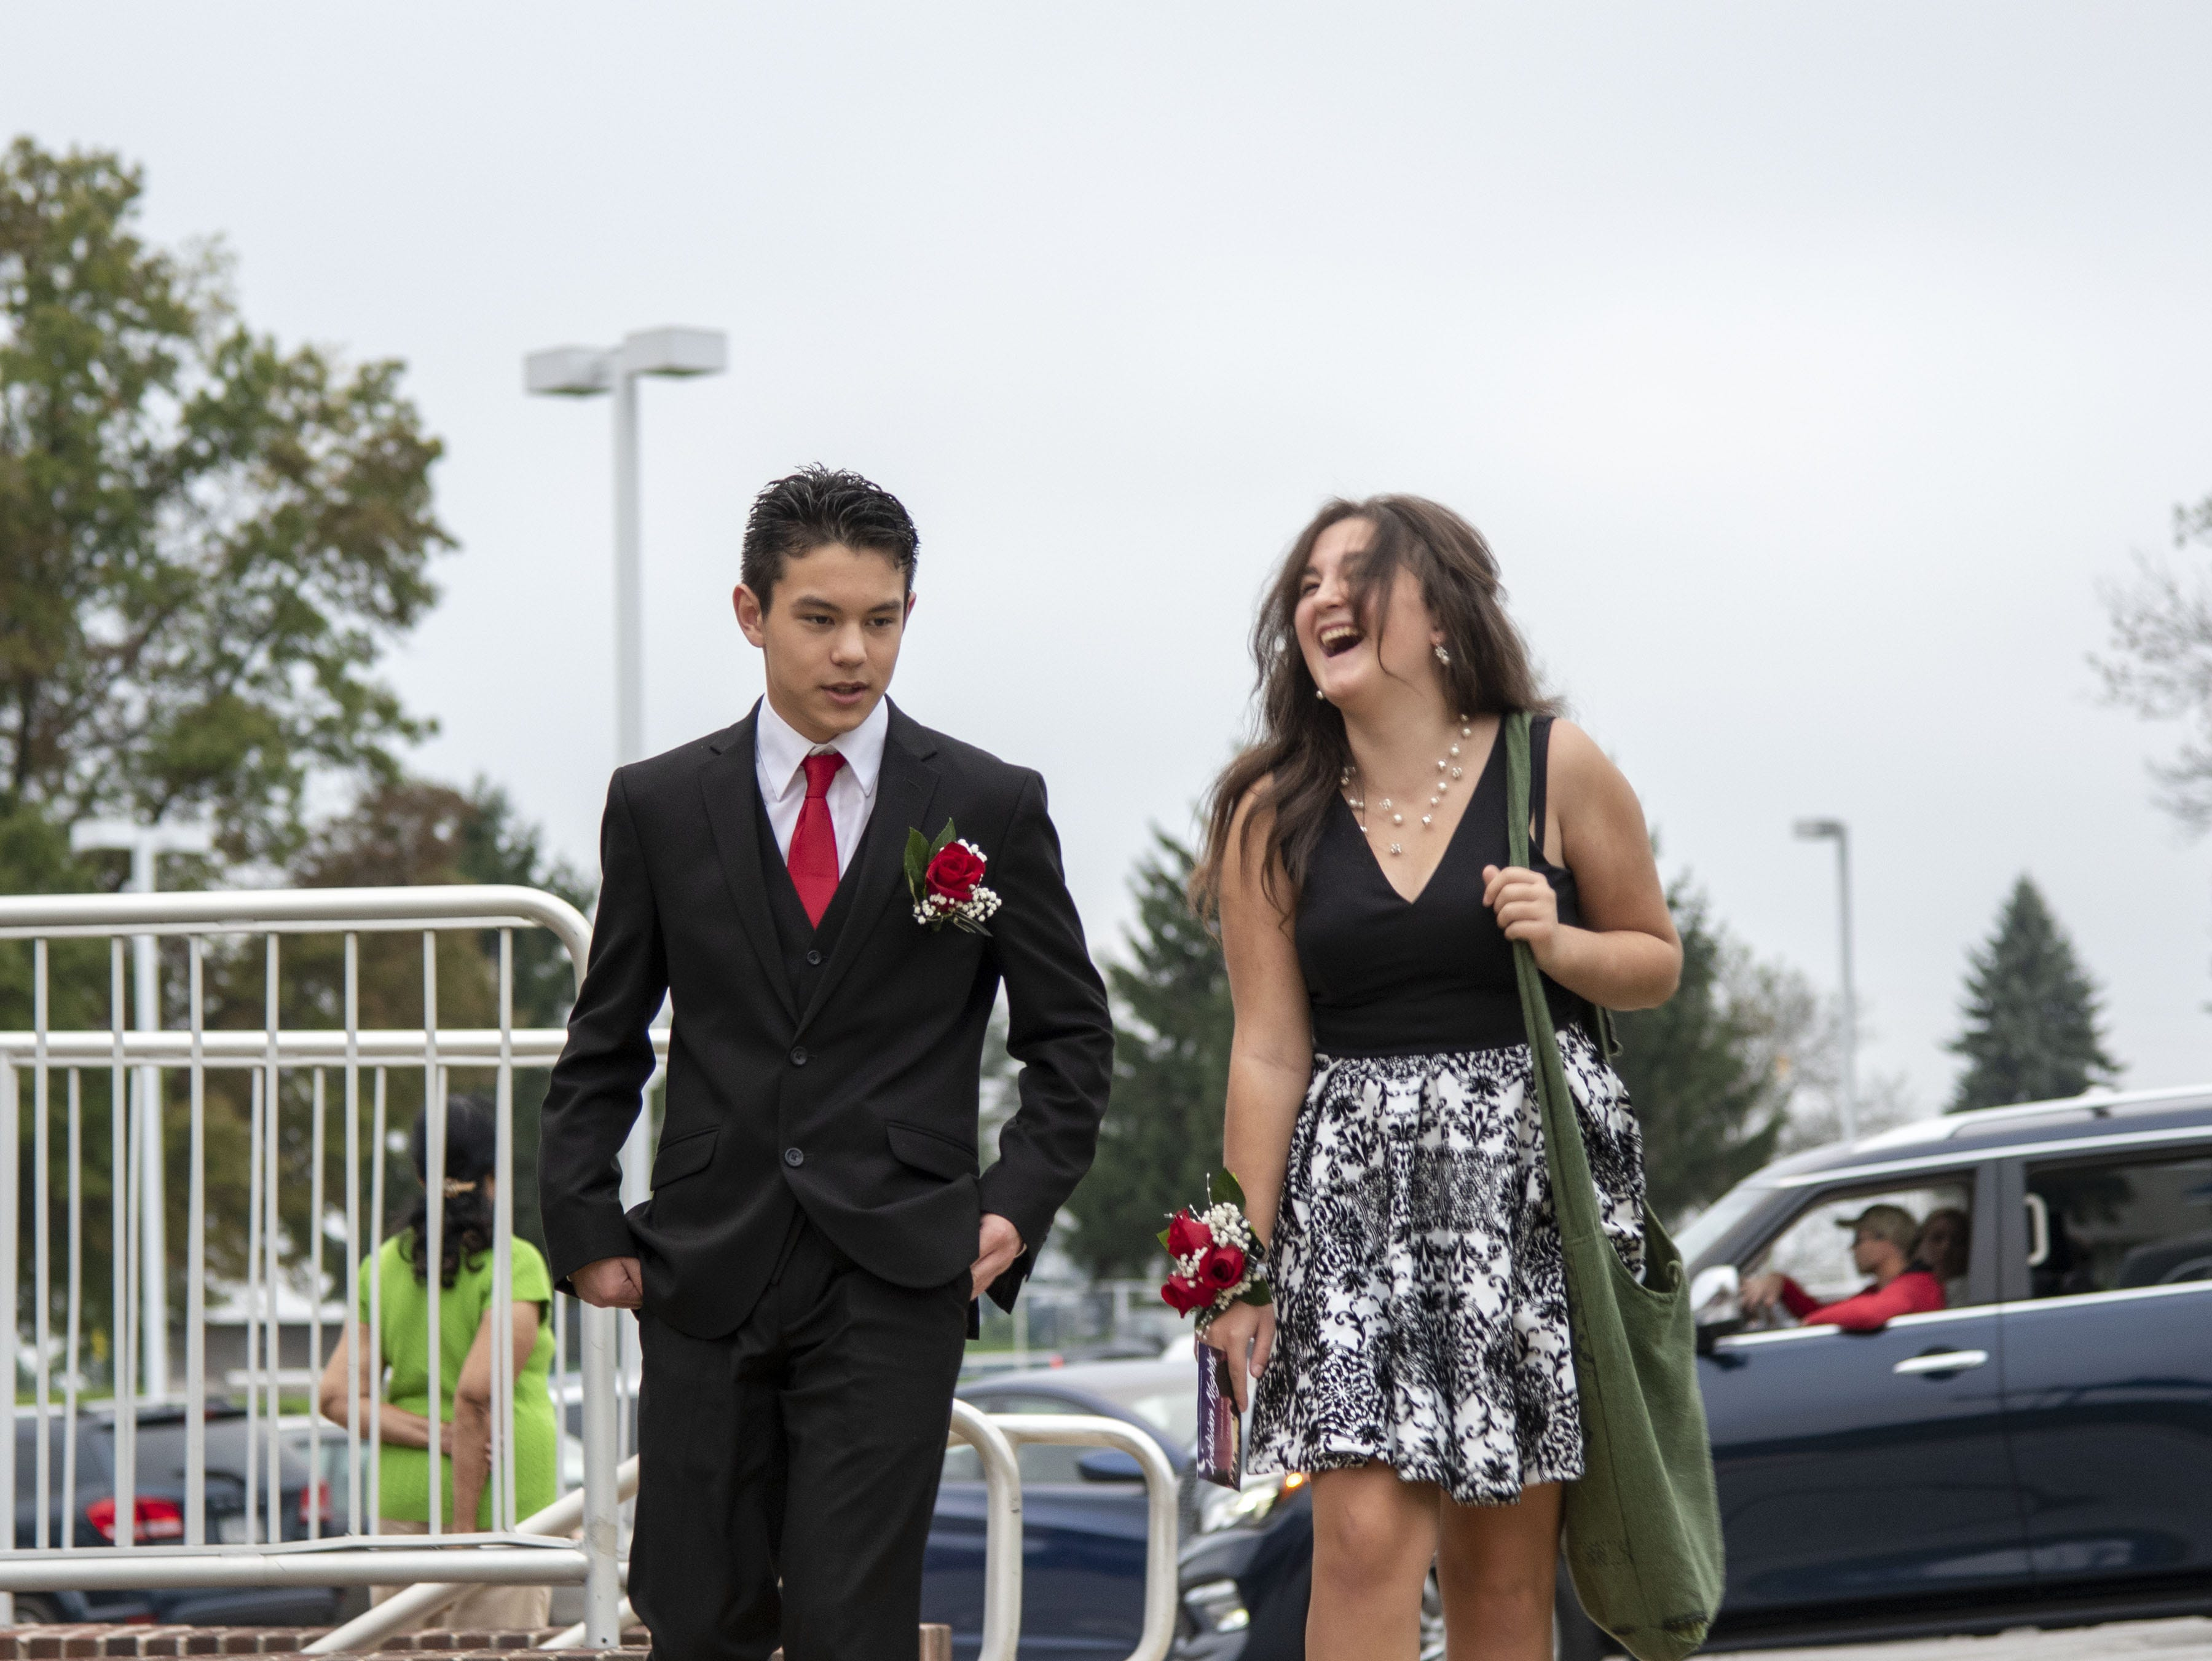 Students arrive to the 2018 Dallastown Area High School homecoming on Saturday, Oct. 06, 2018.